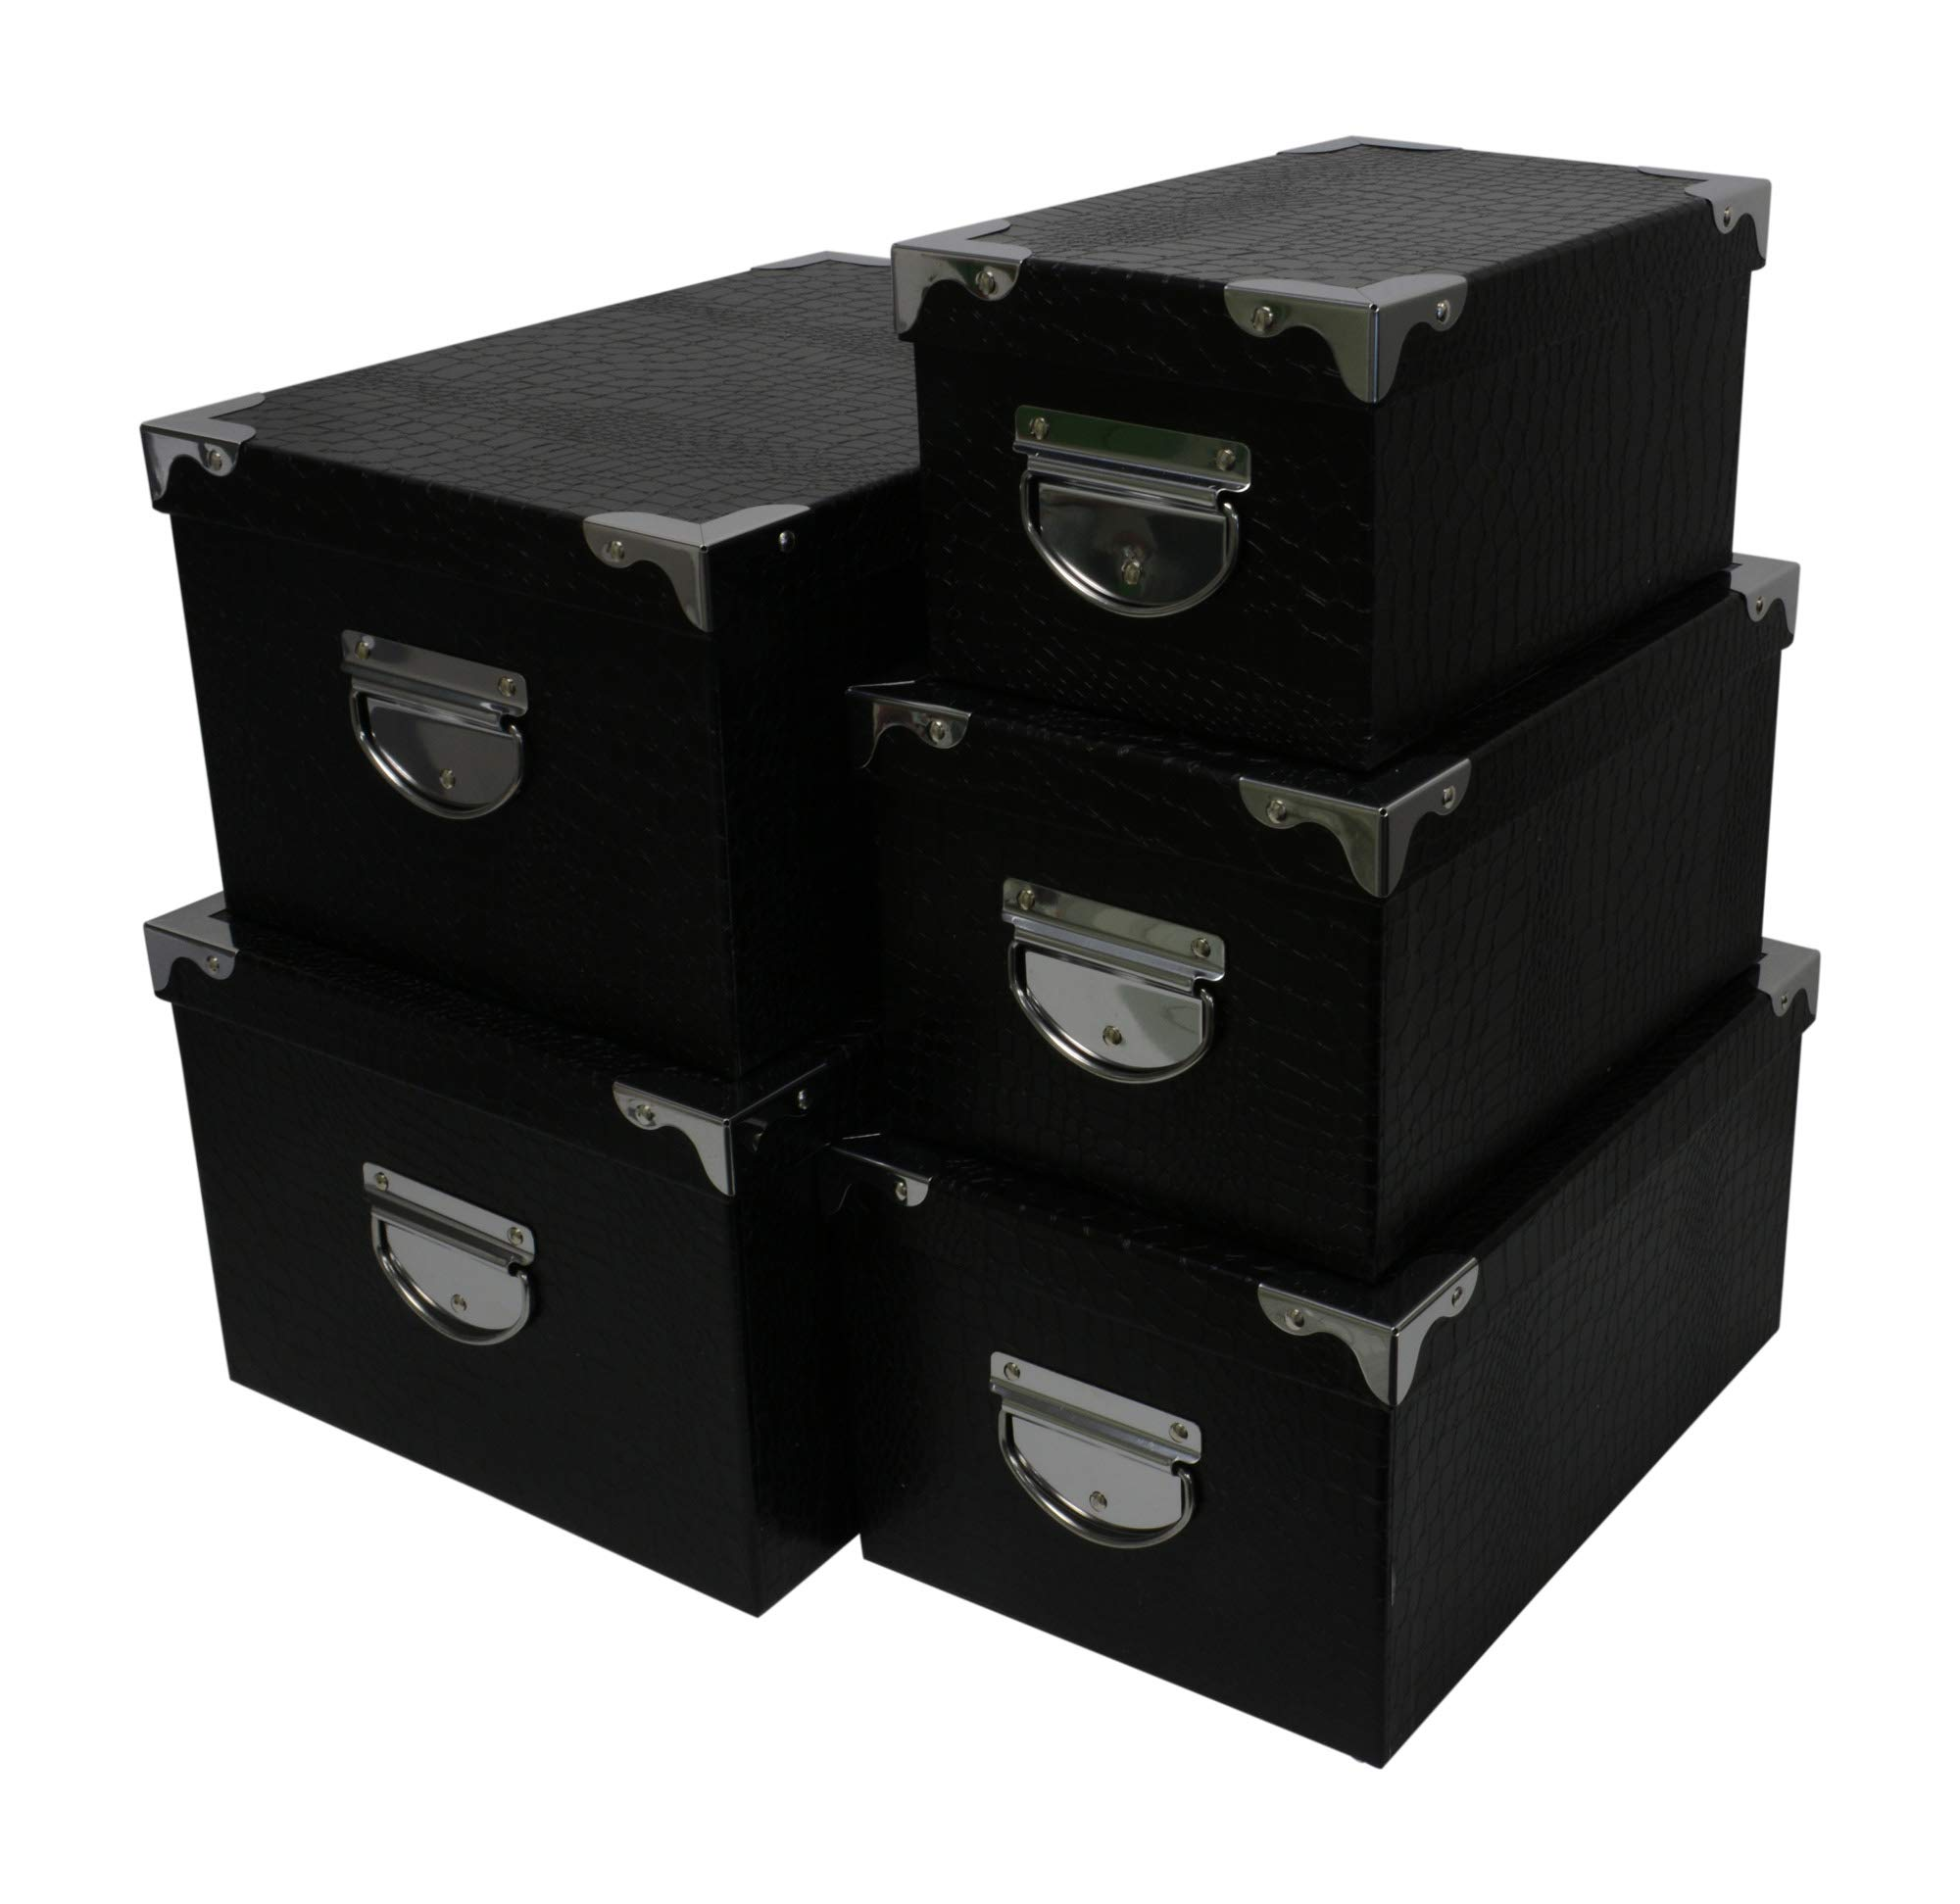 Kraft King Decorative Storage Boxes - Nested, Metal Reinforced Corners, Set of 5 Assorted Sizes (Black Faux Leather) by Kraft King